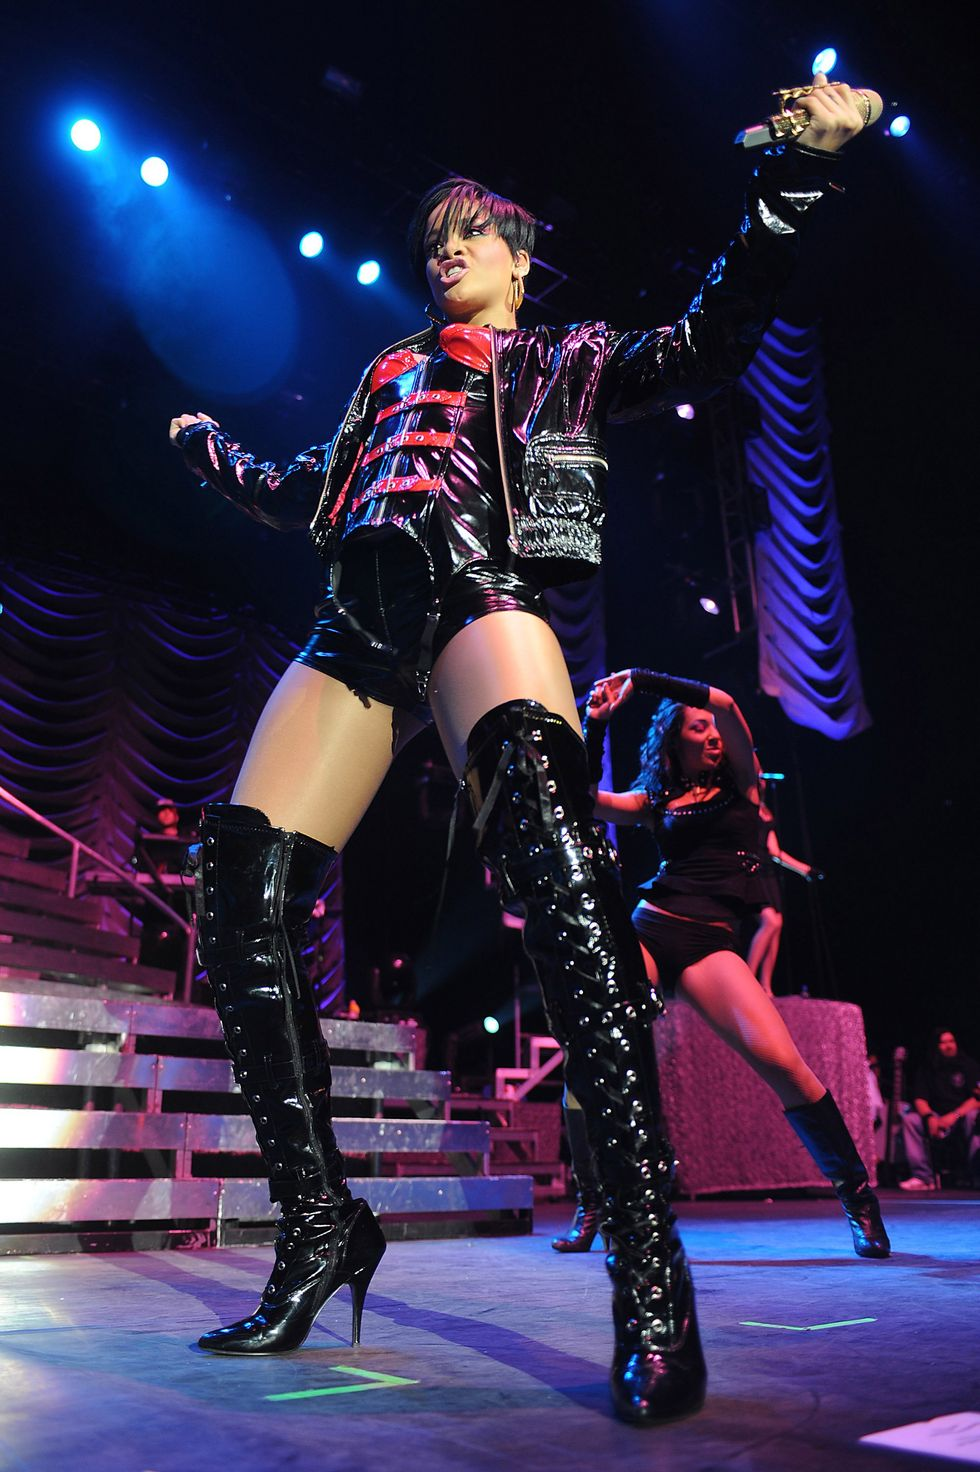 rihanna-performing-at-the-o2-arena-in-london-01